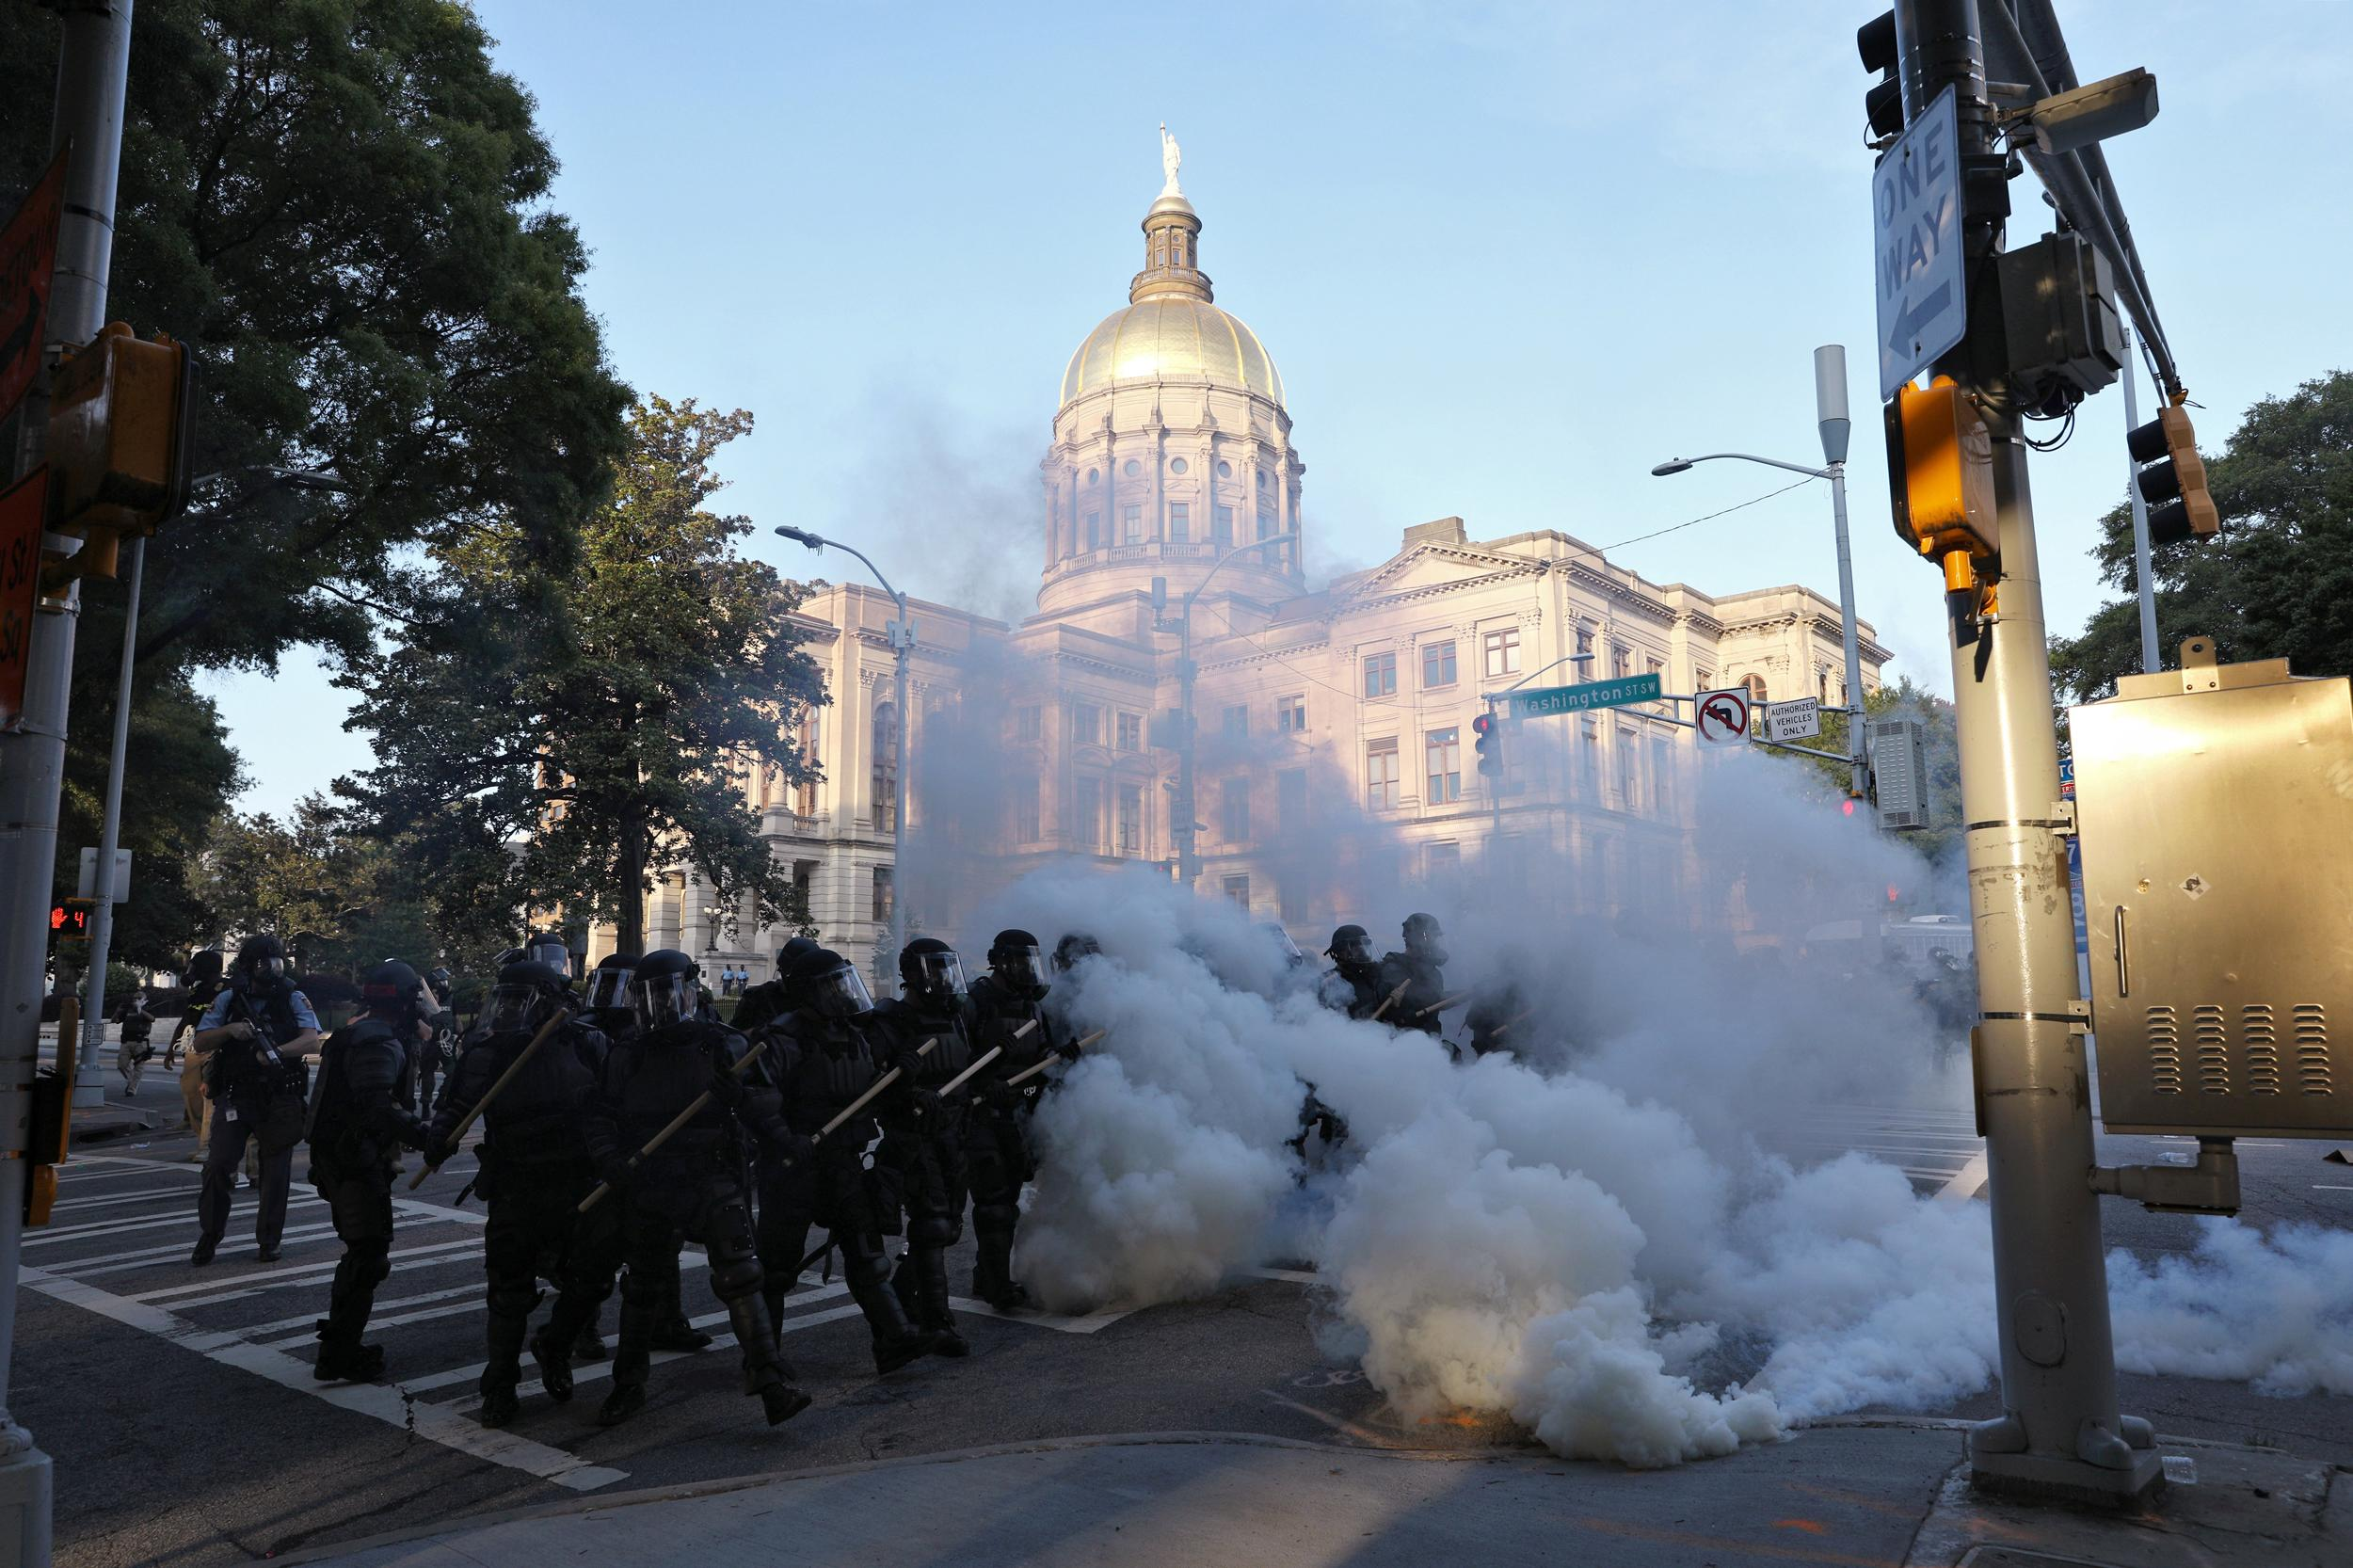 Two companies dominate the tear gas industry. Their profits come at the expense of their workers.